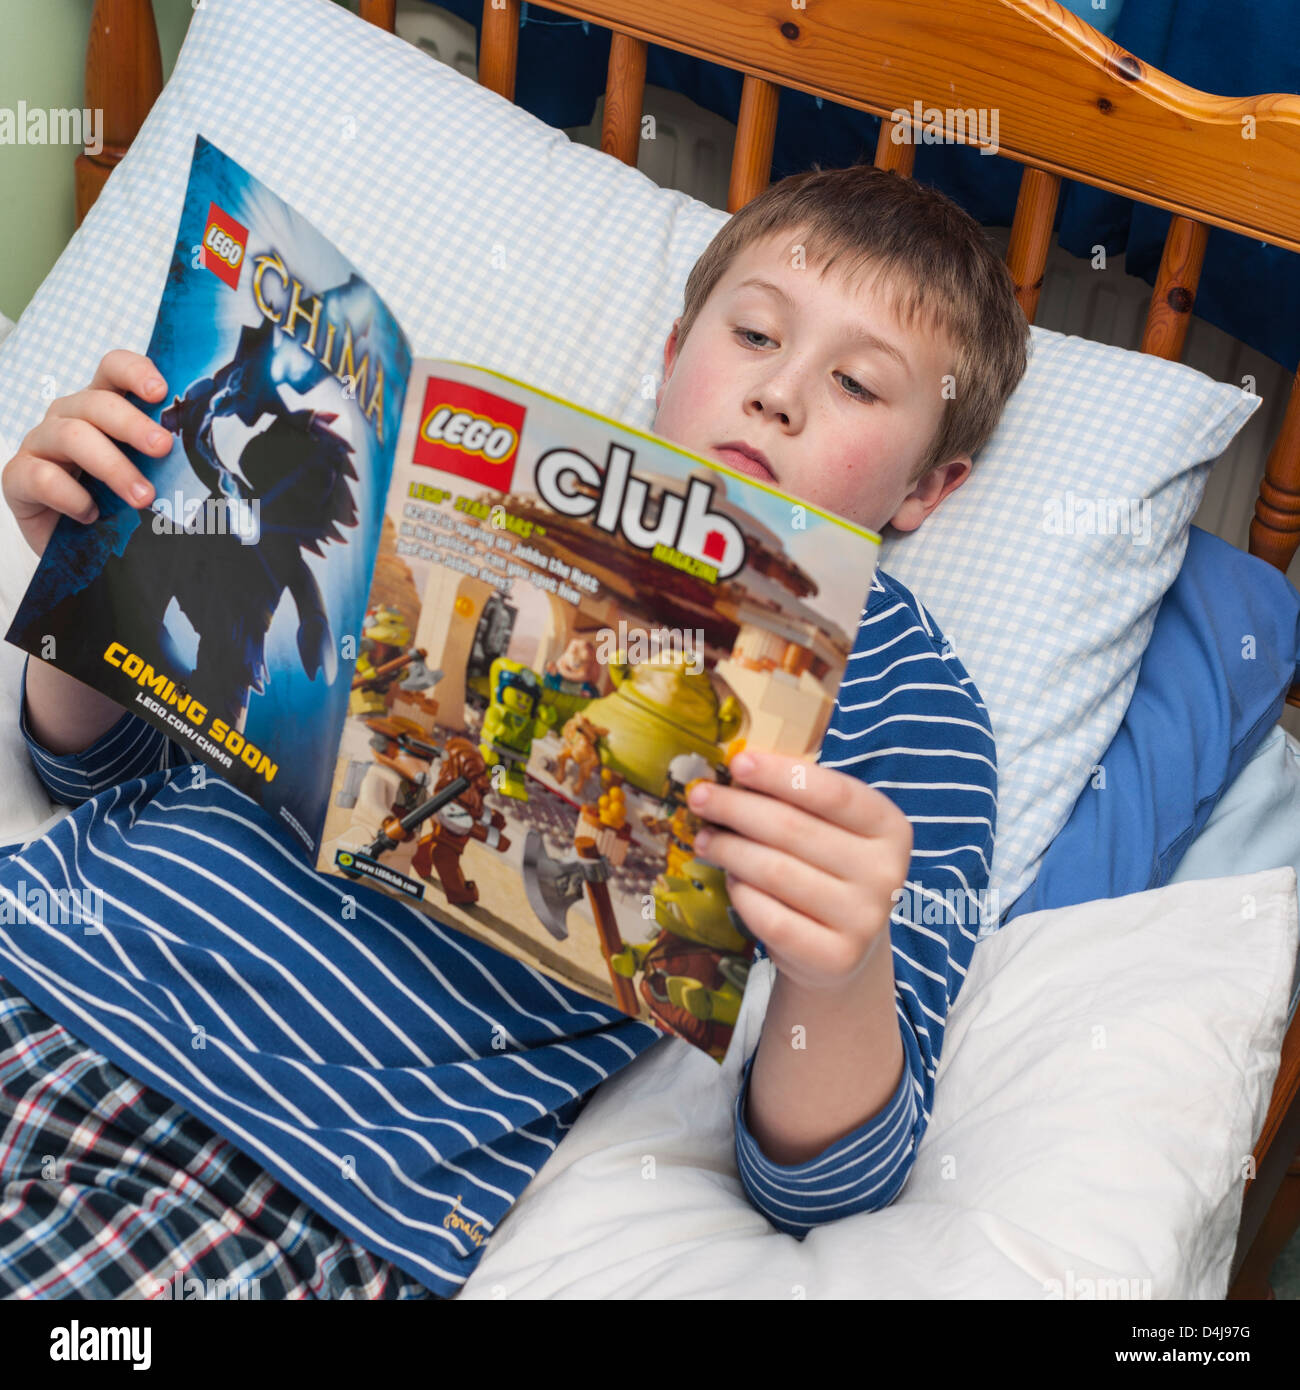 A nine year old boy reading the Lego club magazine in his bedroom - Stock Image